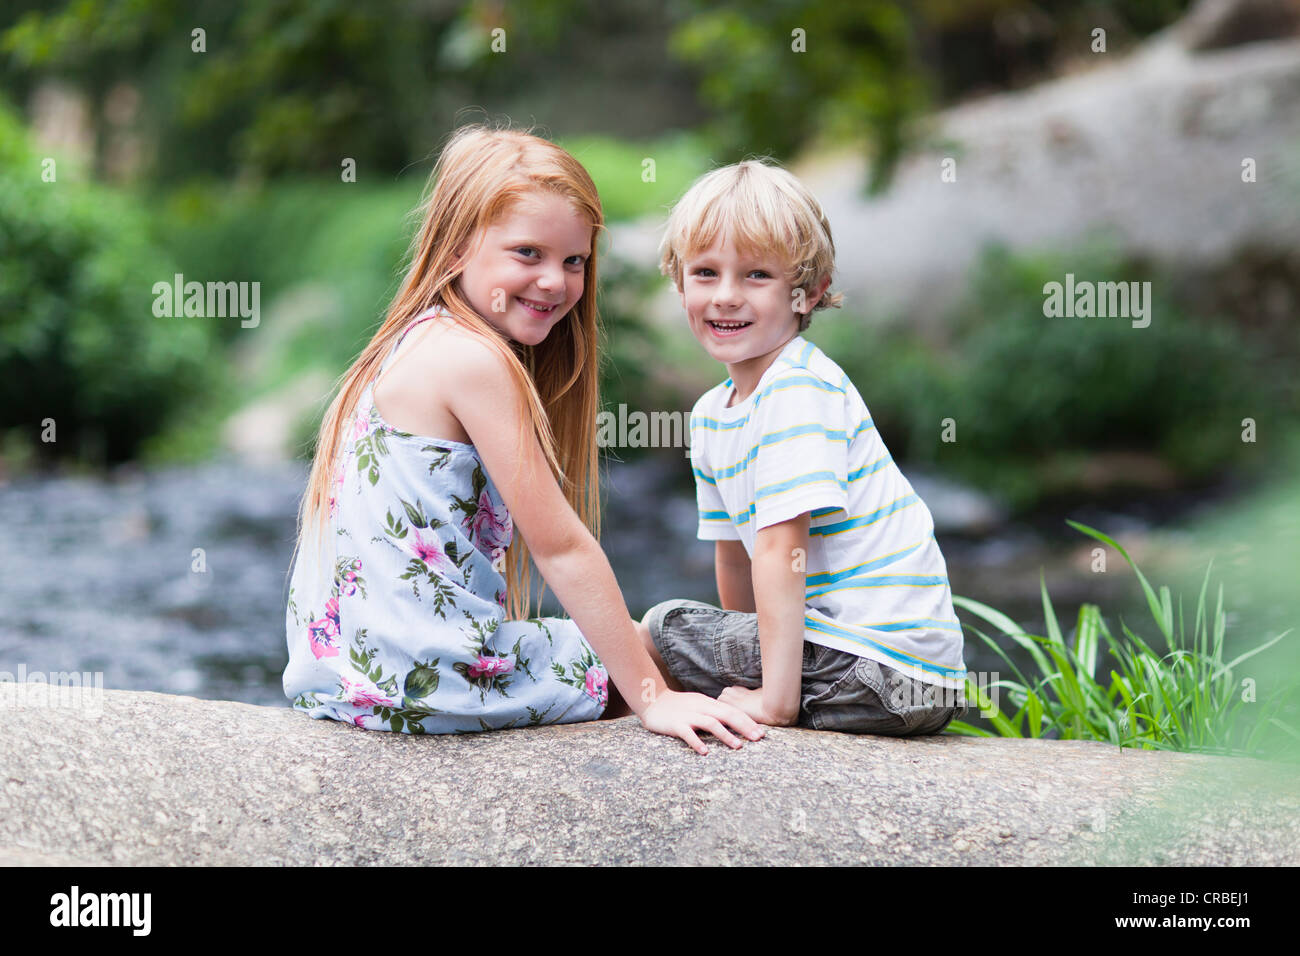 Children sitting on rock together - Stock Image